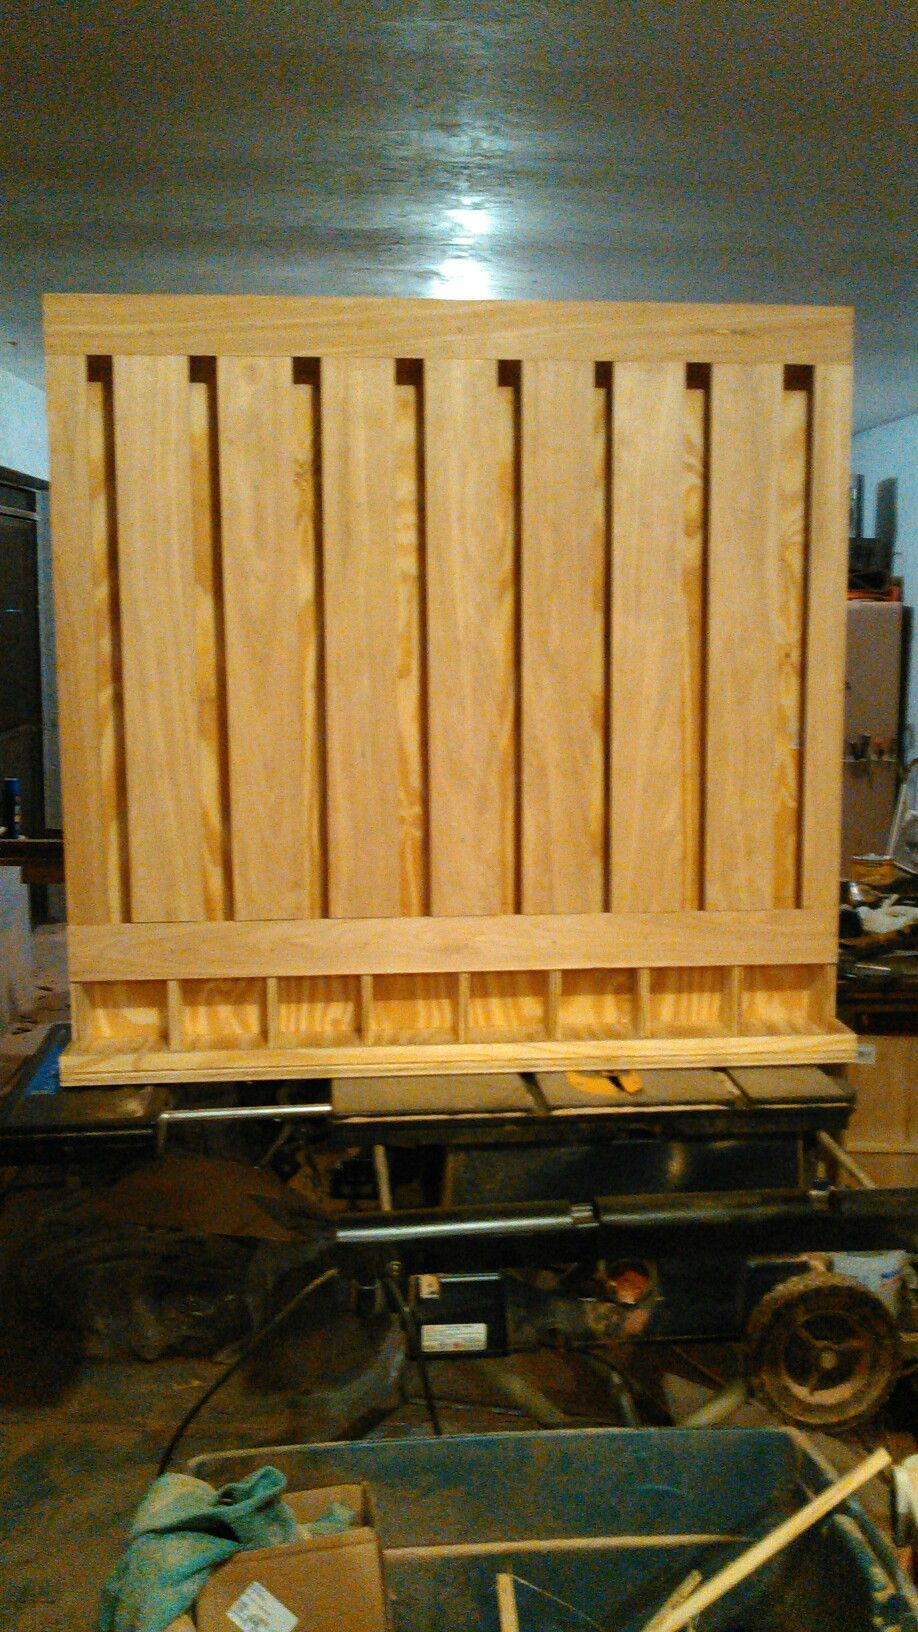 Can goods storage rack 1 sheet 12 and a 12 sheet of 1